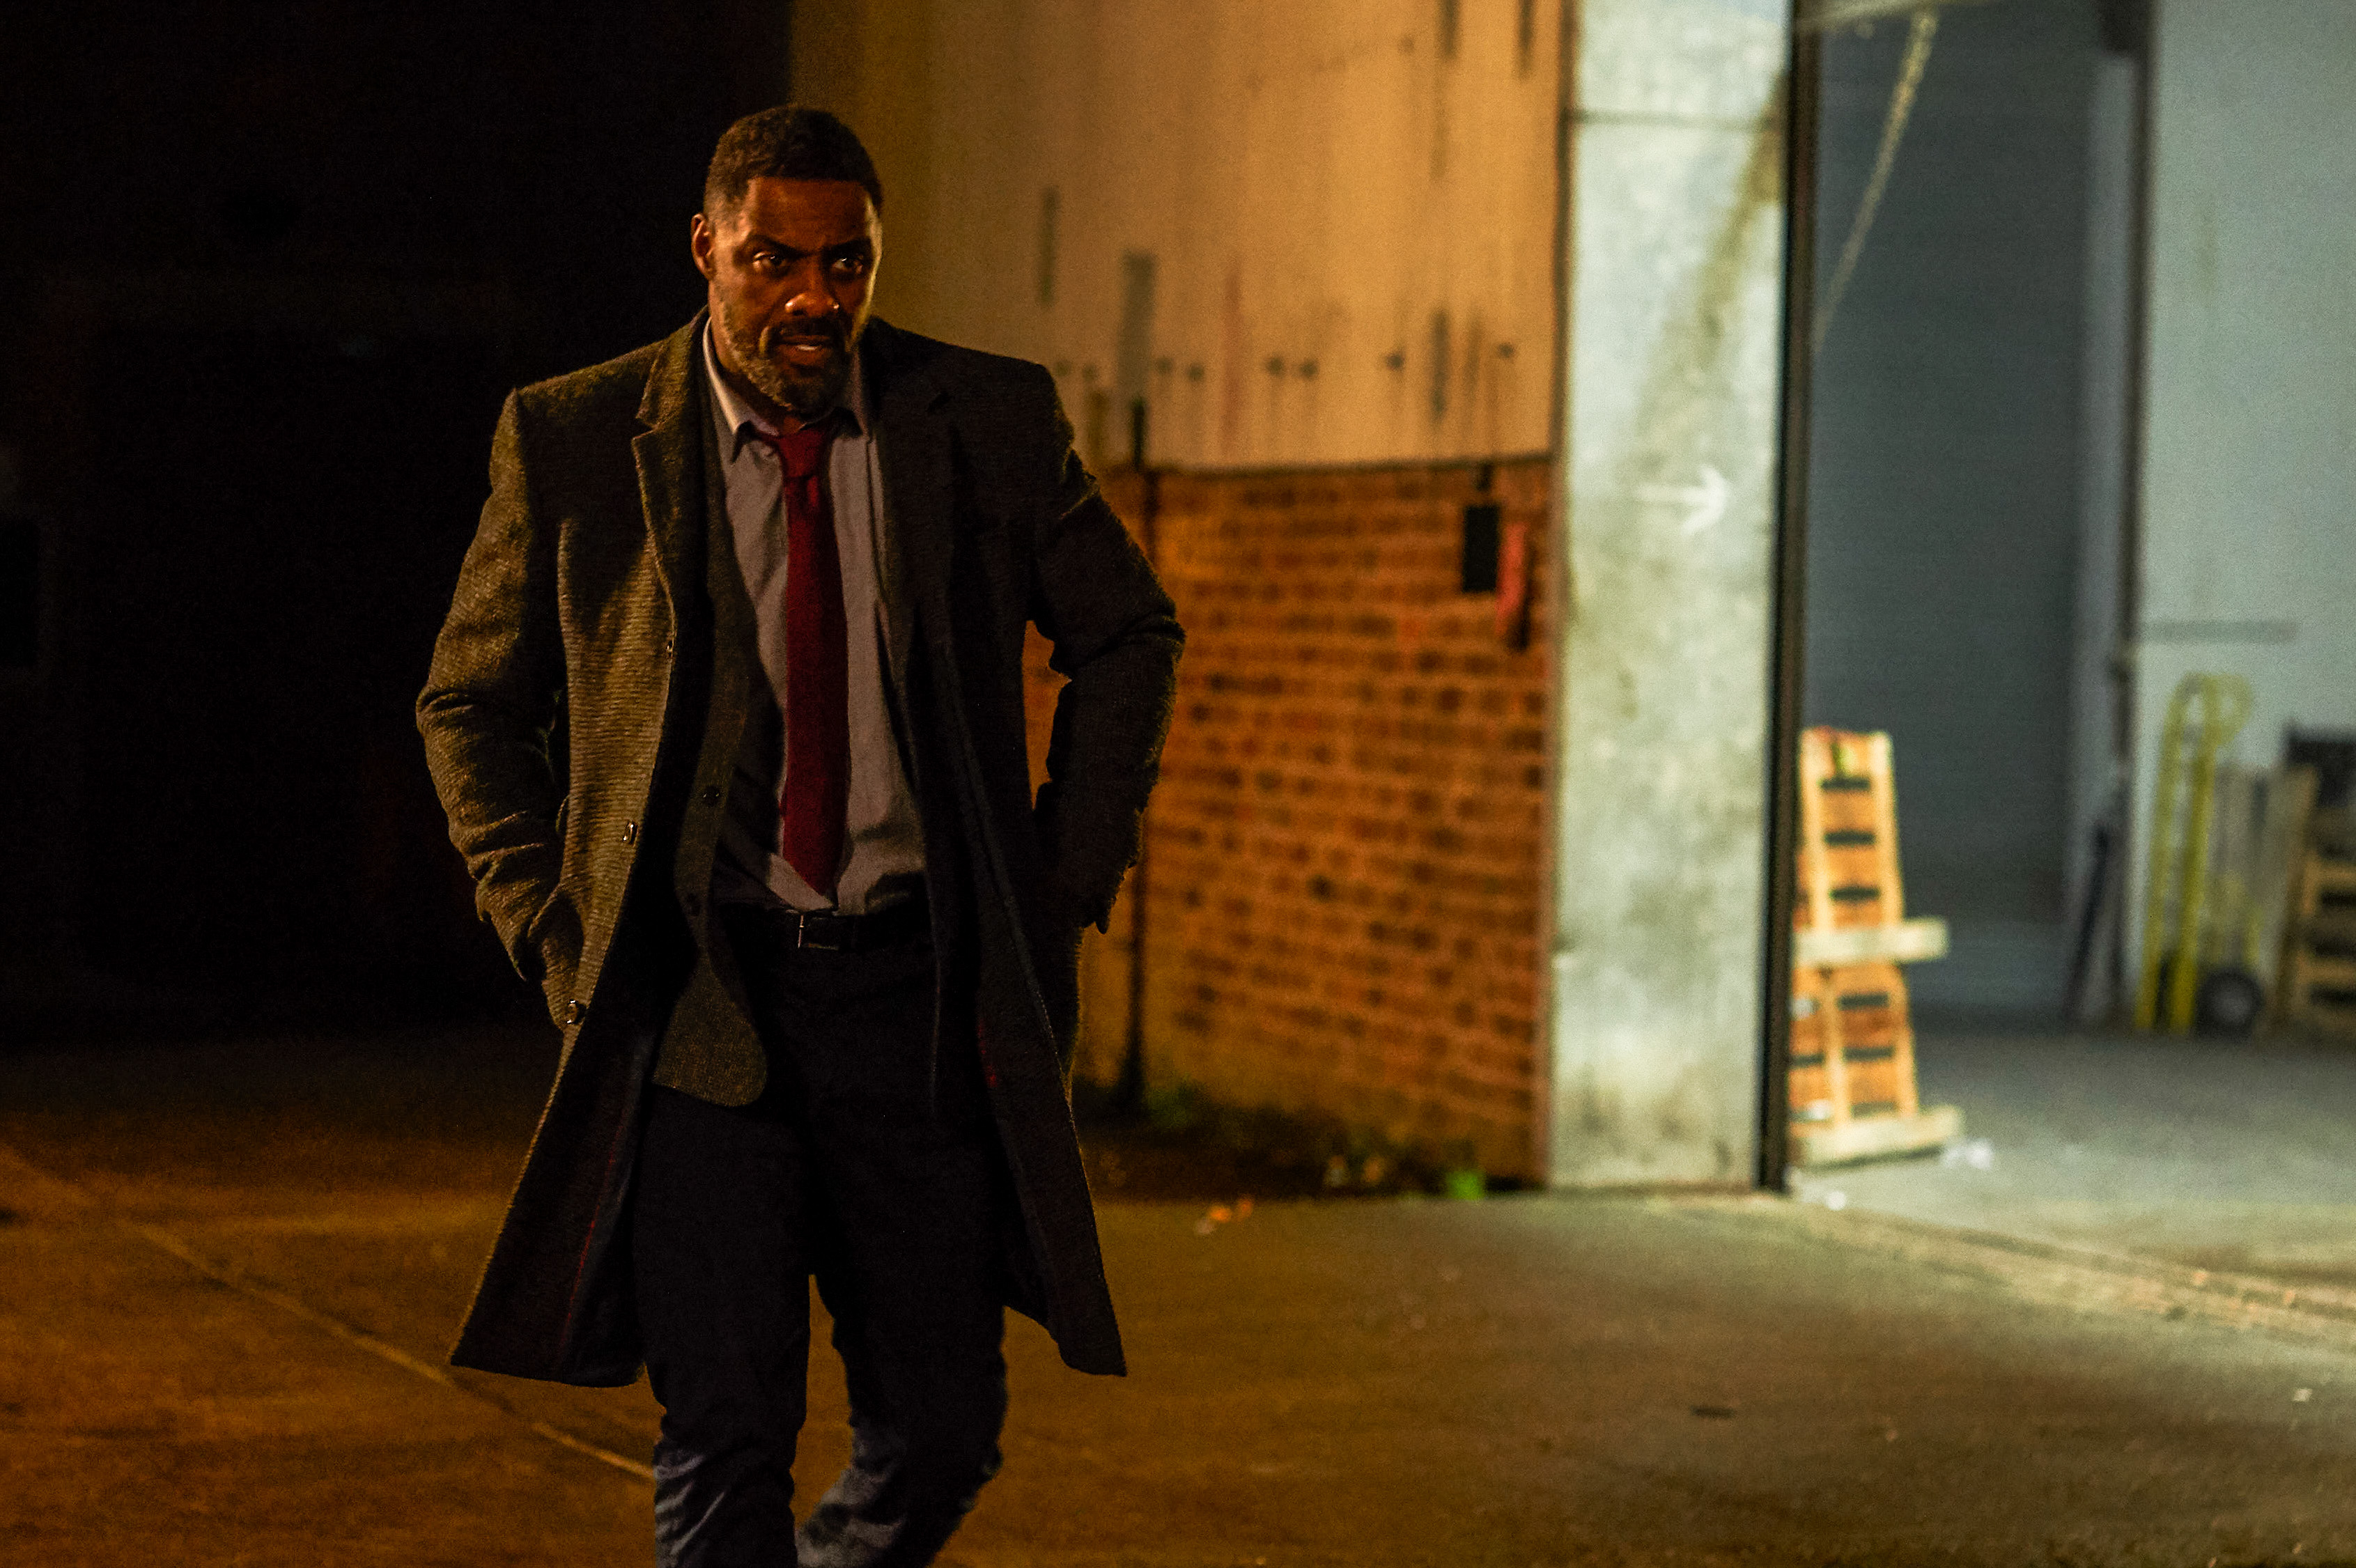 Idris Elba as DCI John Luther - Luther _ Season 5, Episode 3 - Photo Credit: Des Willie/BBCAmerica